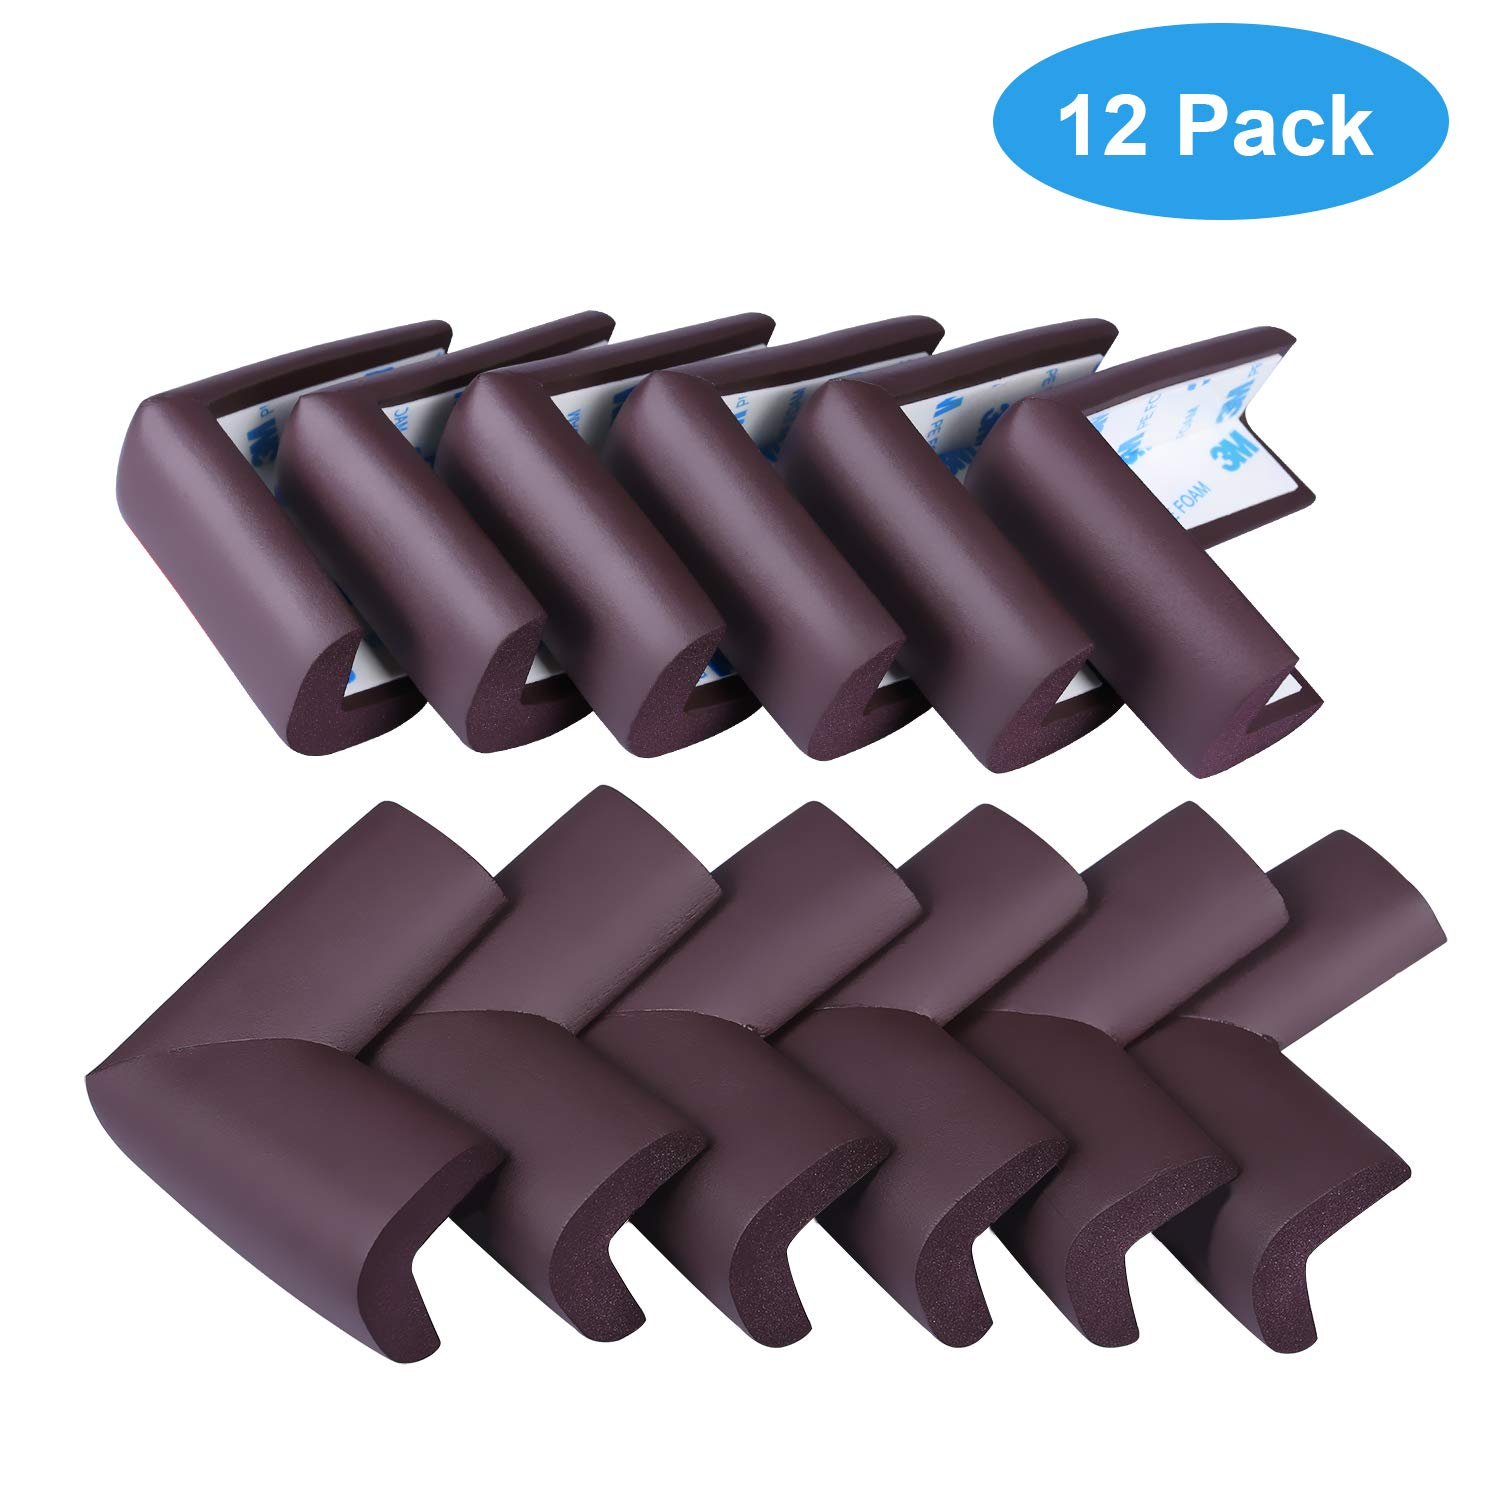 Babepai Soft Baby Proofing Corner Protector for Furniture with 3M Tape to Keep Kids Safe Corner Bumpers 12 Pack(Brown)